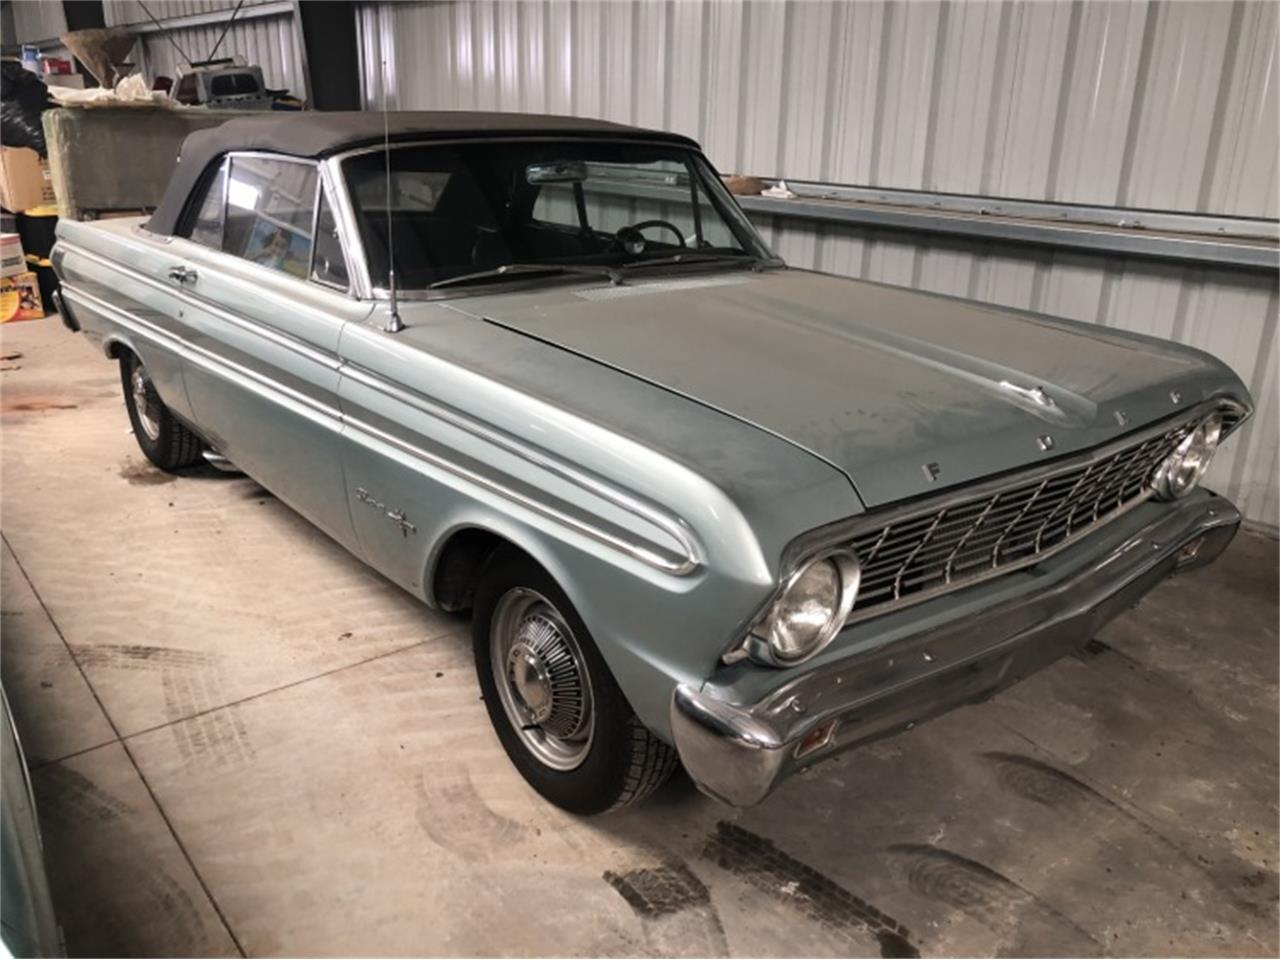 Large Picture of Classic 1964 Ford Falcon Auction Vehicle Offered by Motorsport Auction Group 797664 - QHSV